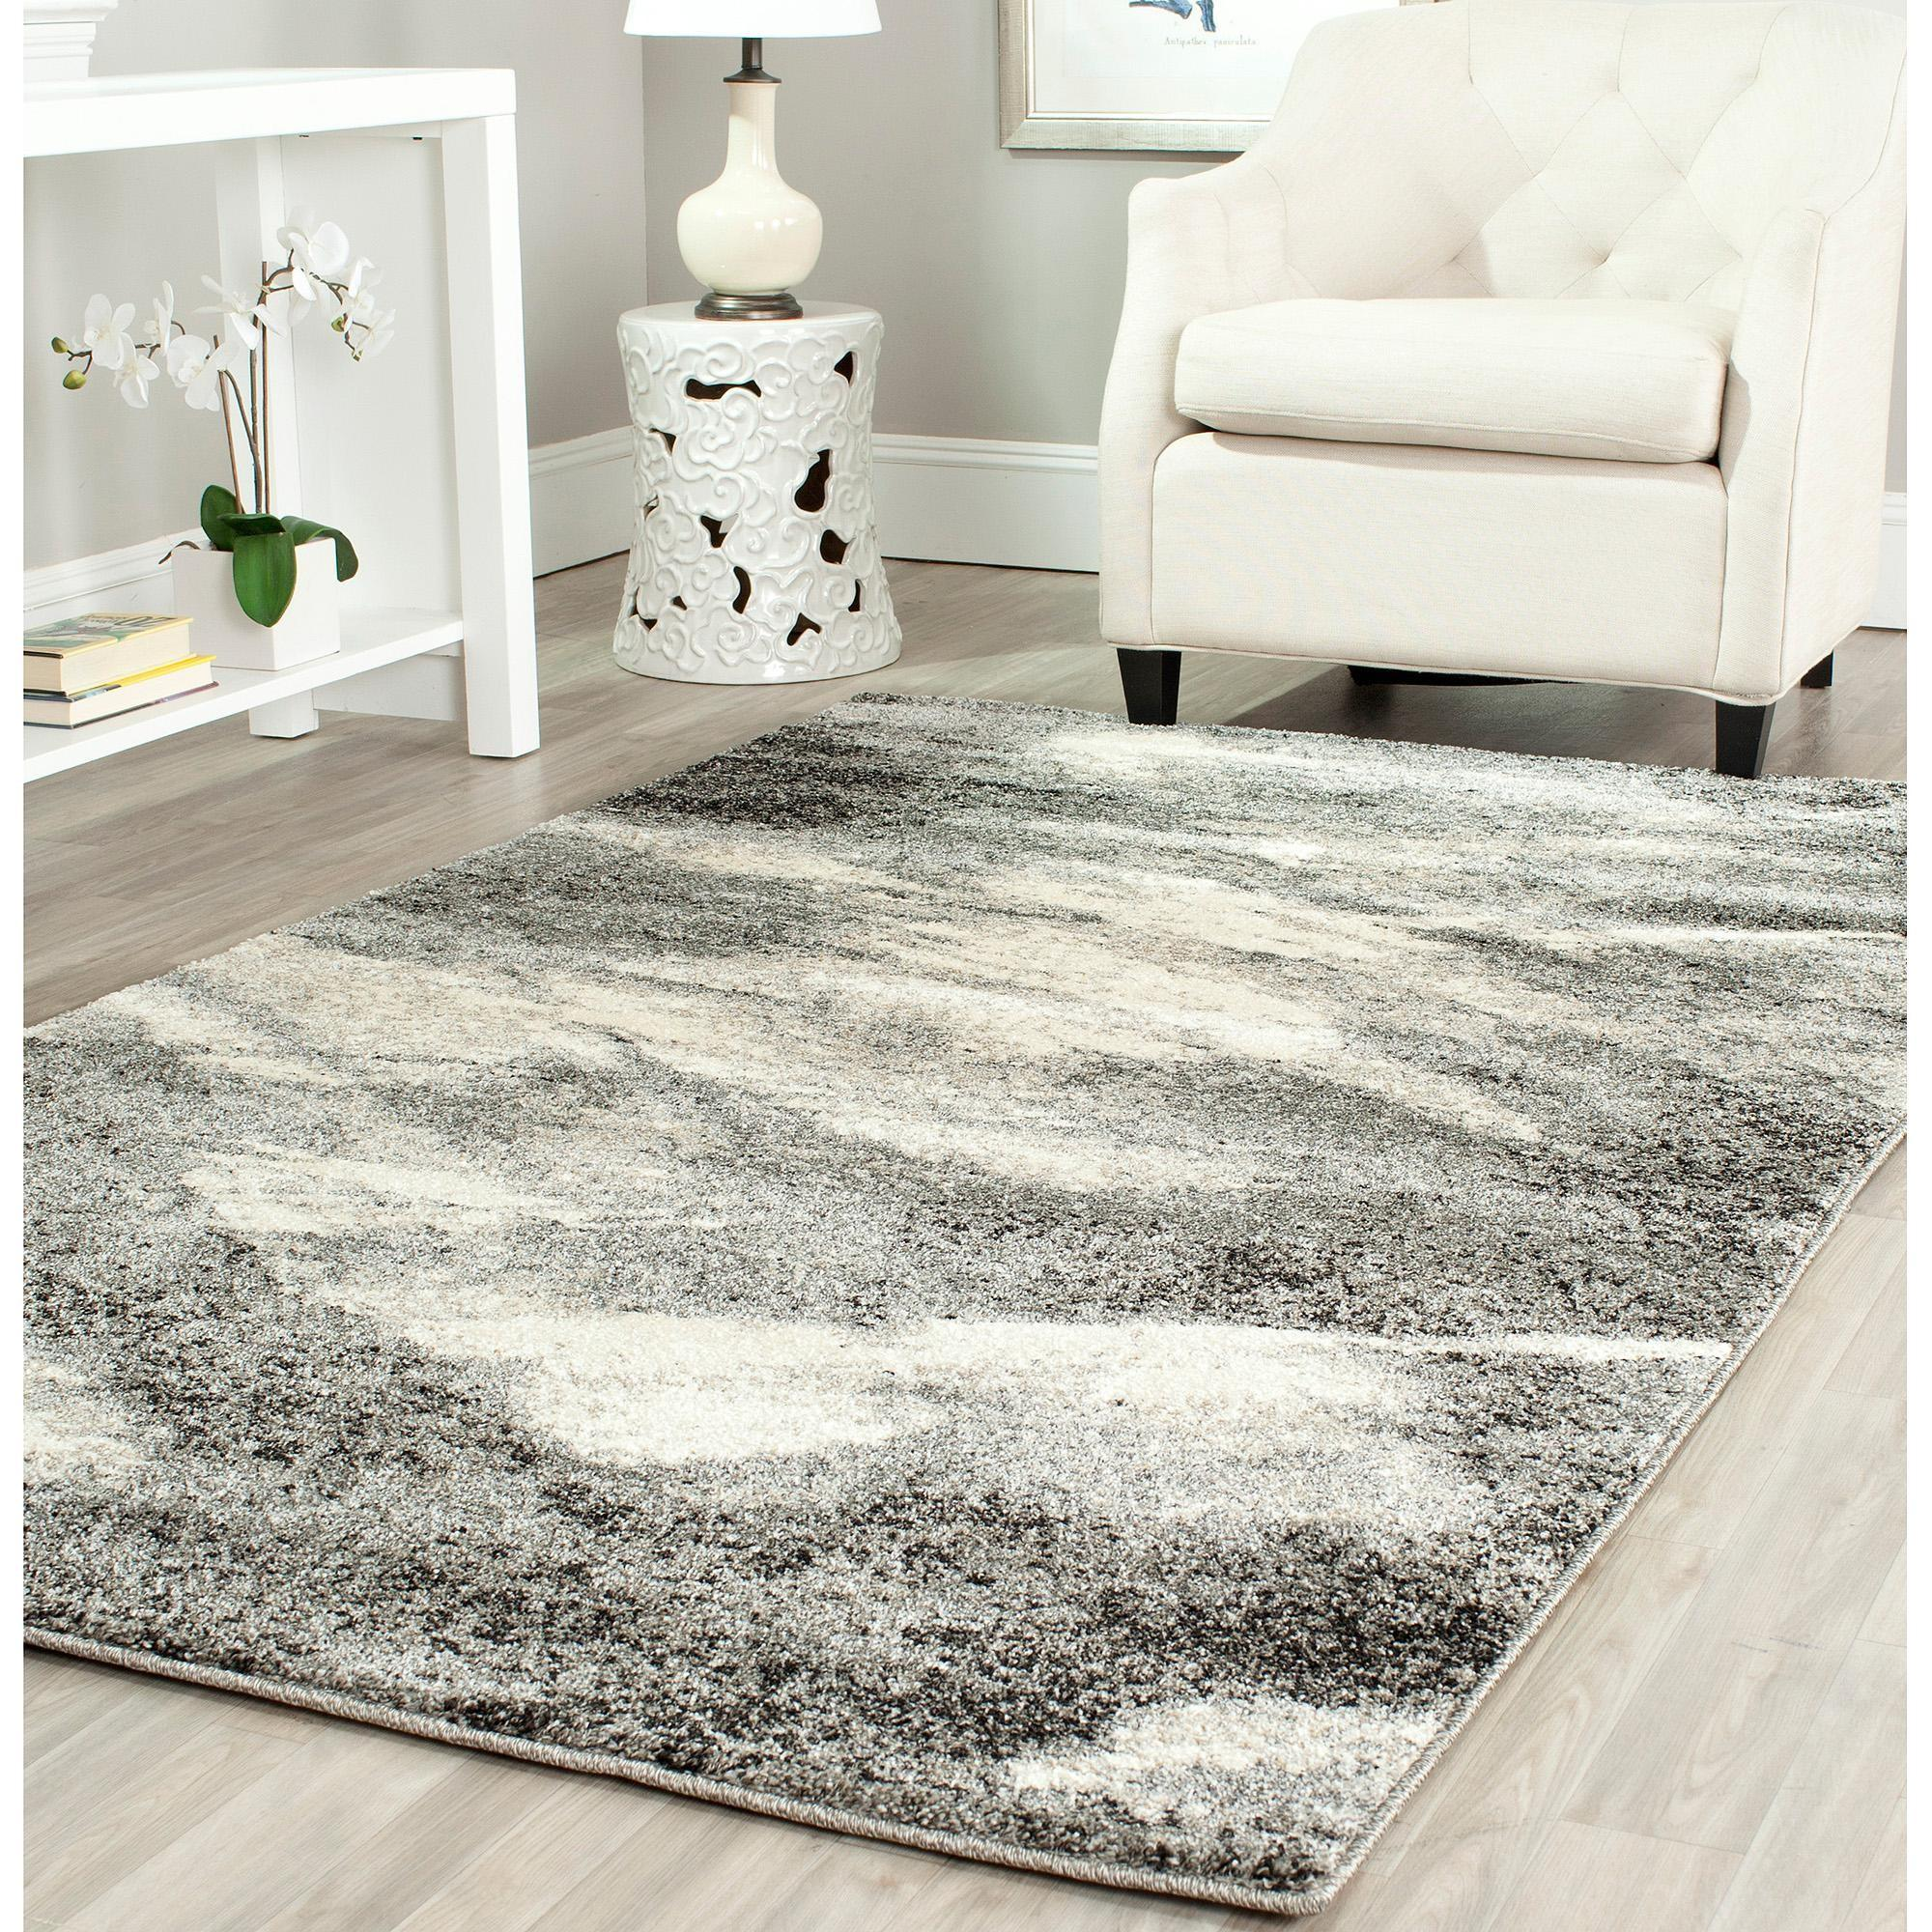 Damask Area Rug Black White Roselawnlutheran